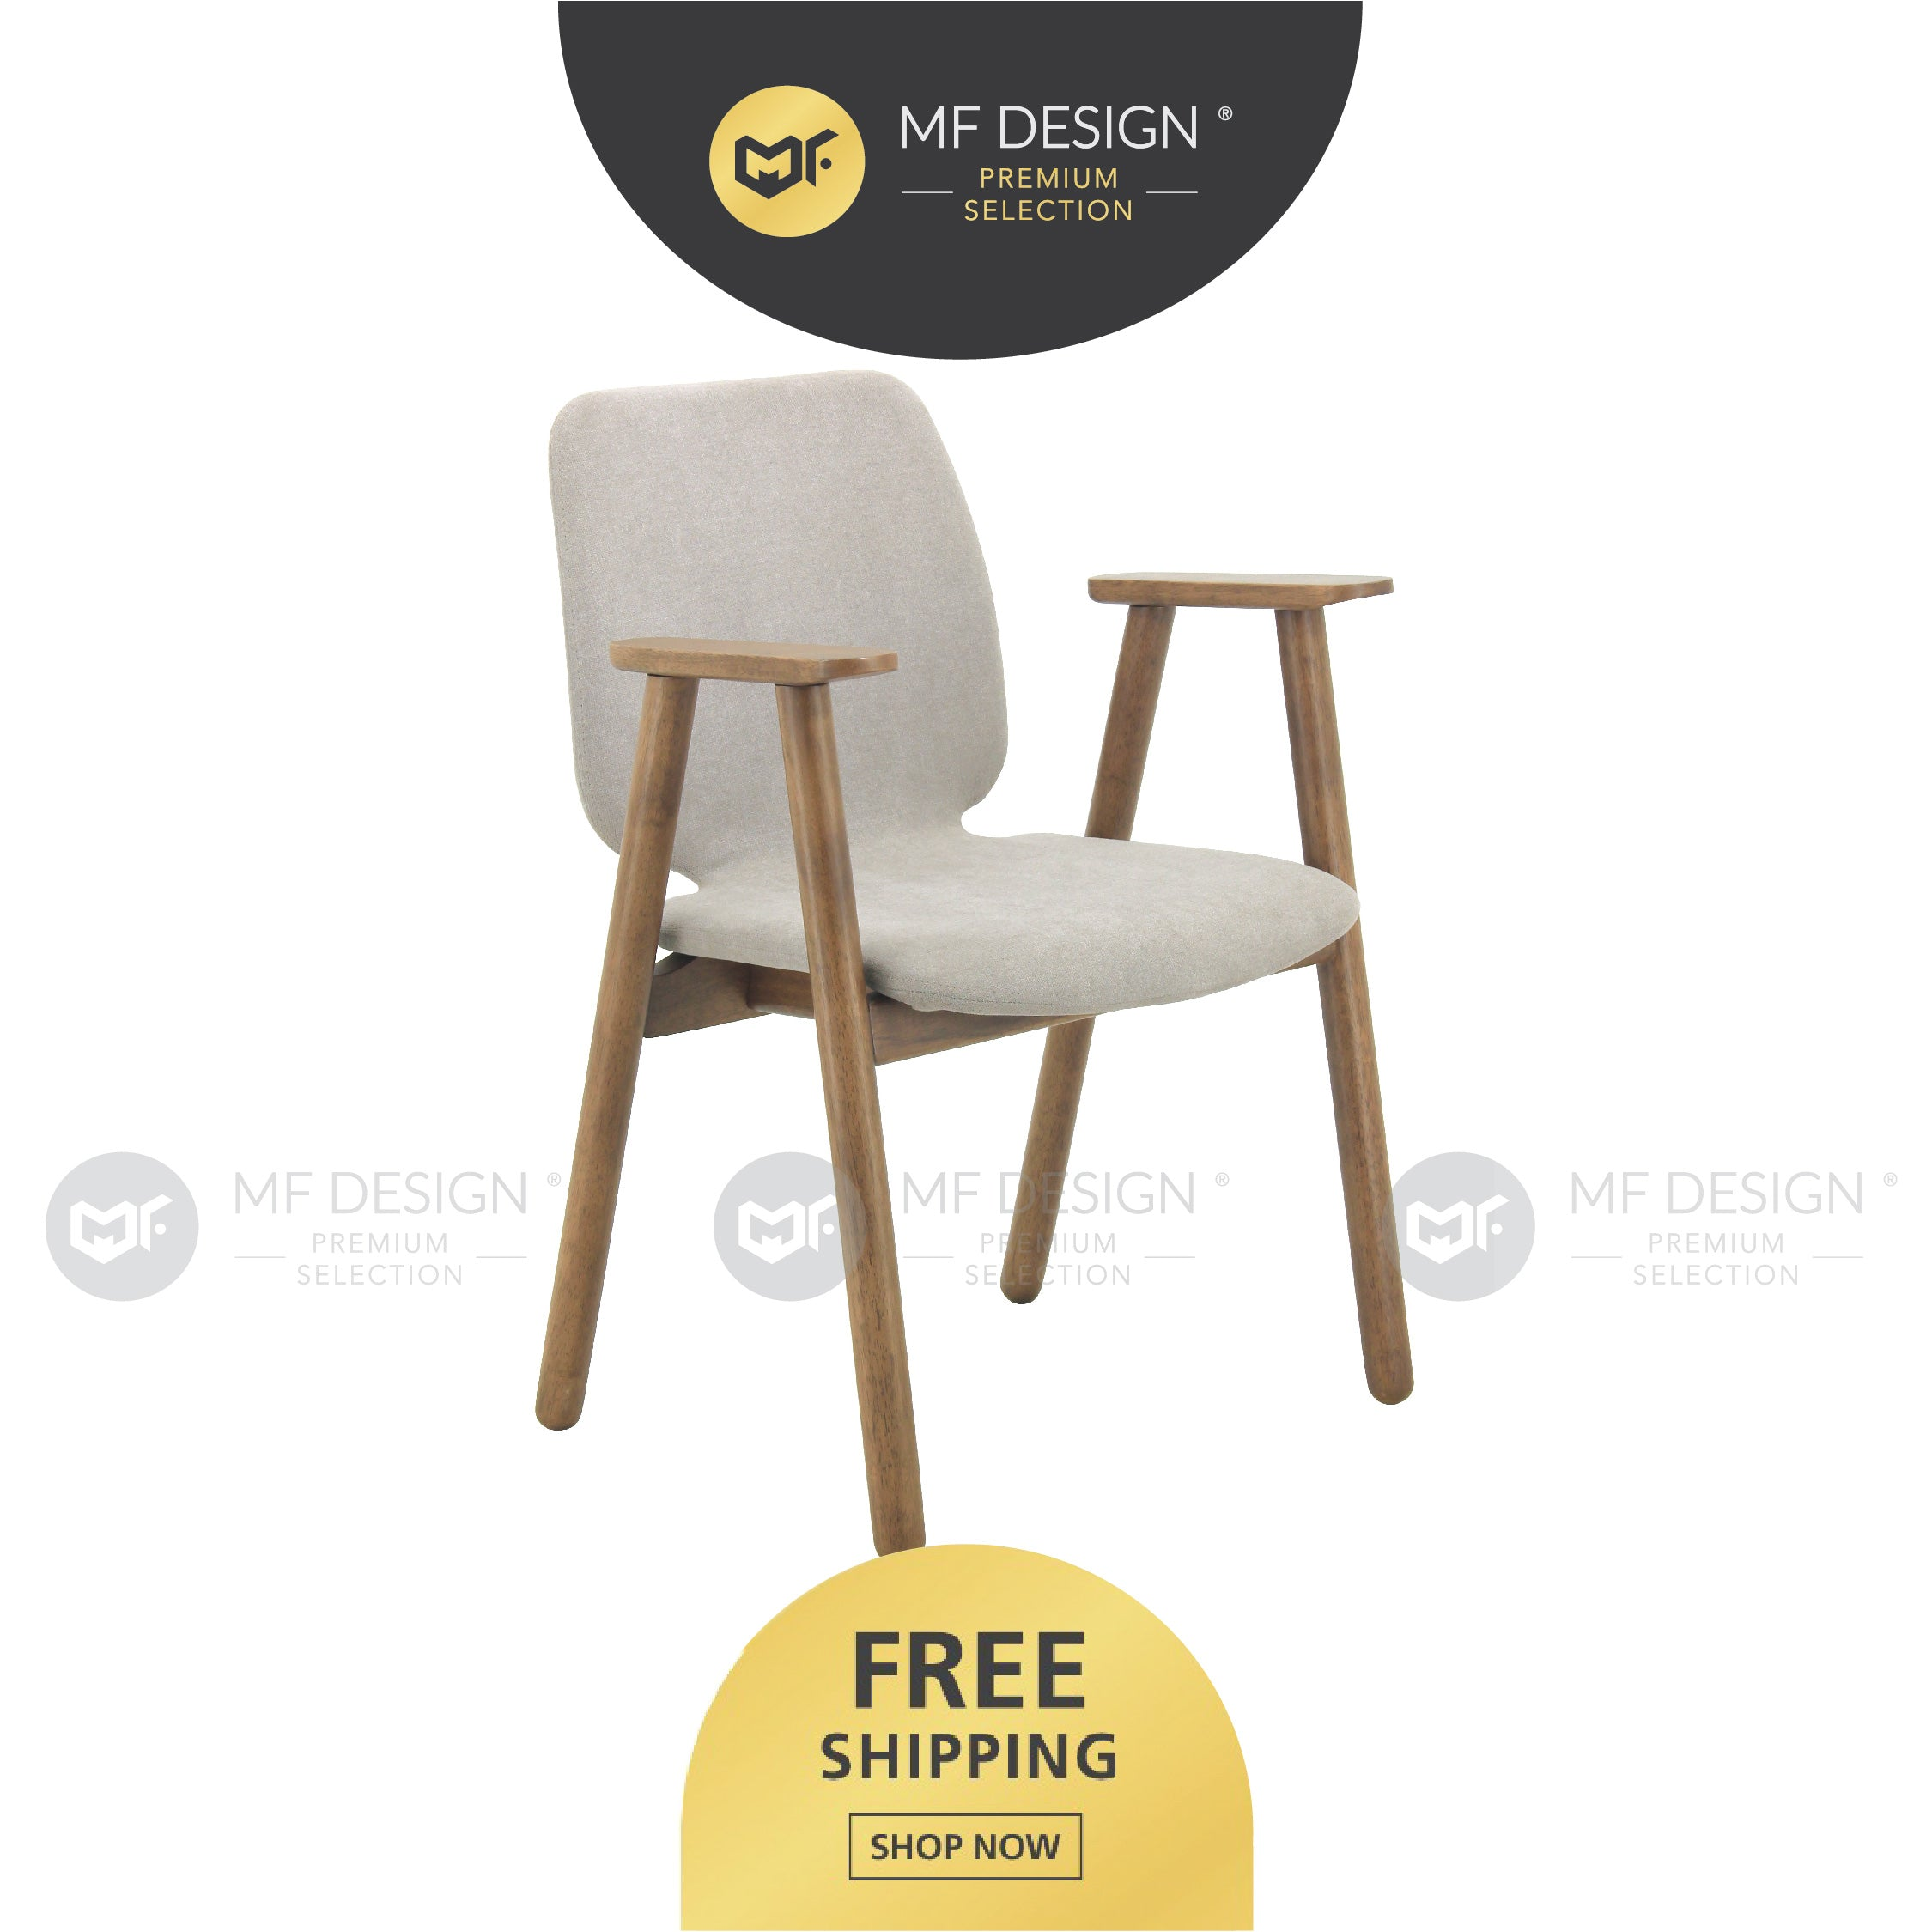 MFD Premium Maclean Dining Chair / kerusi / chair